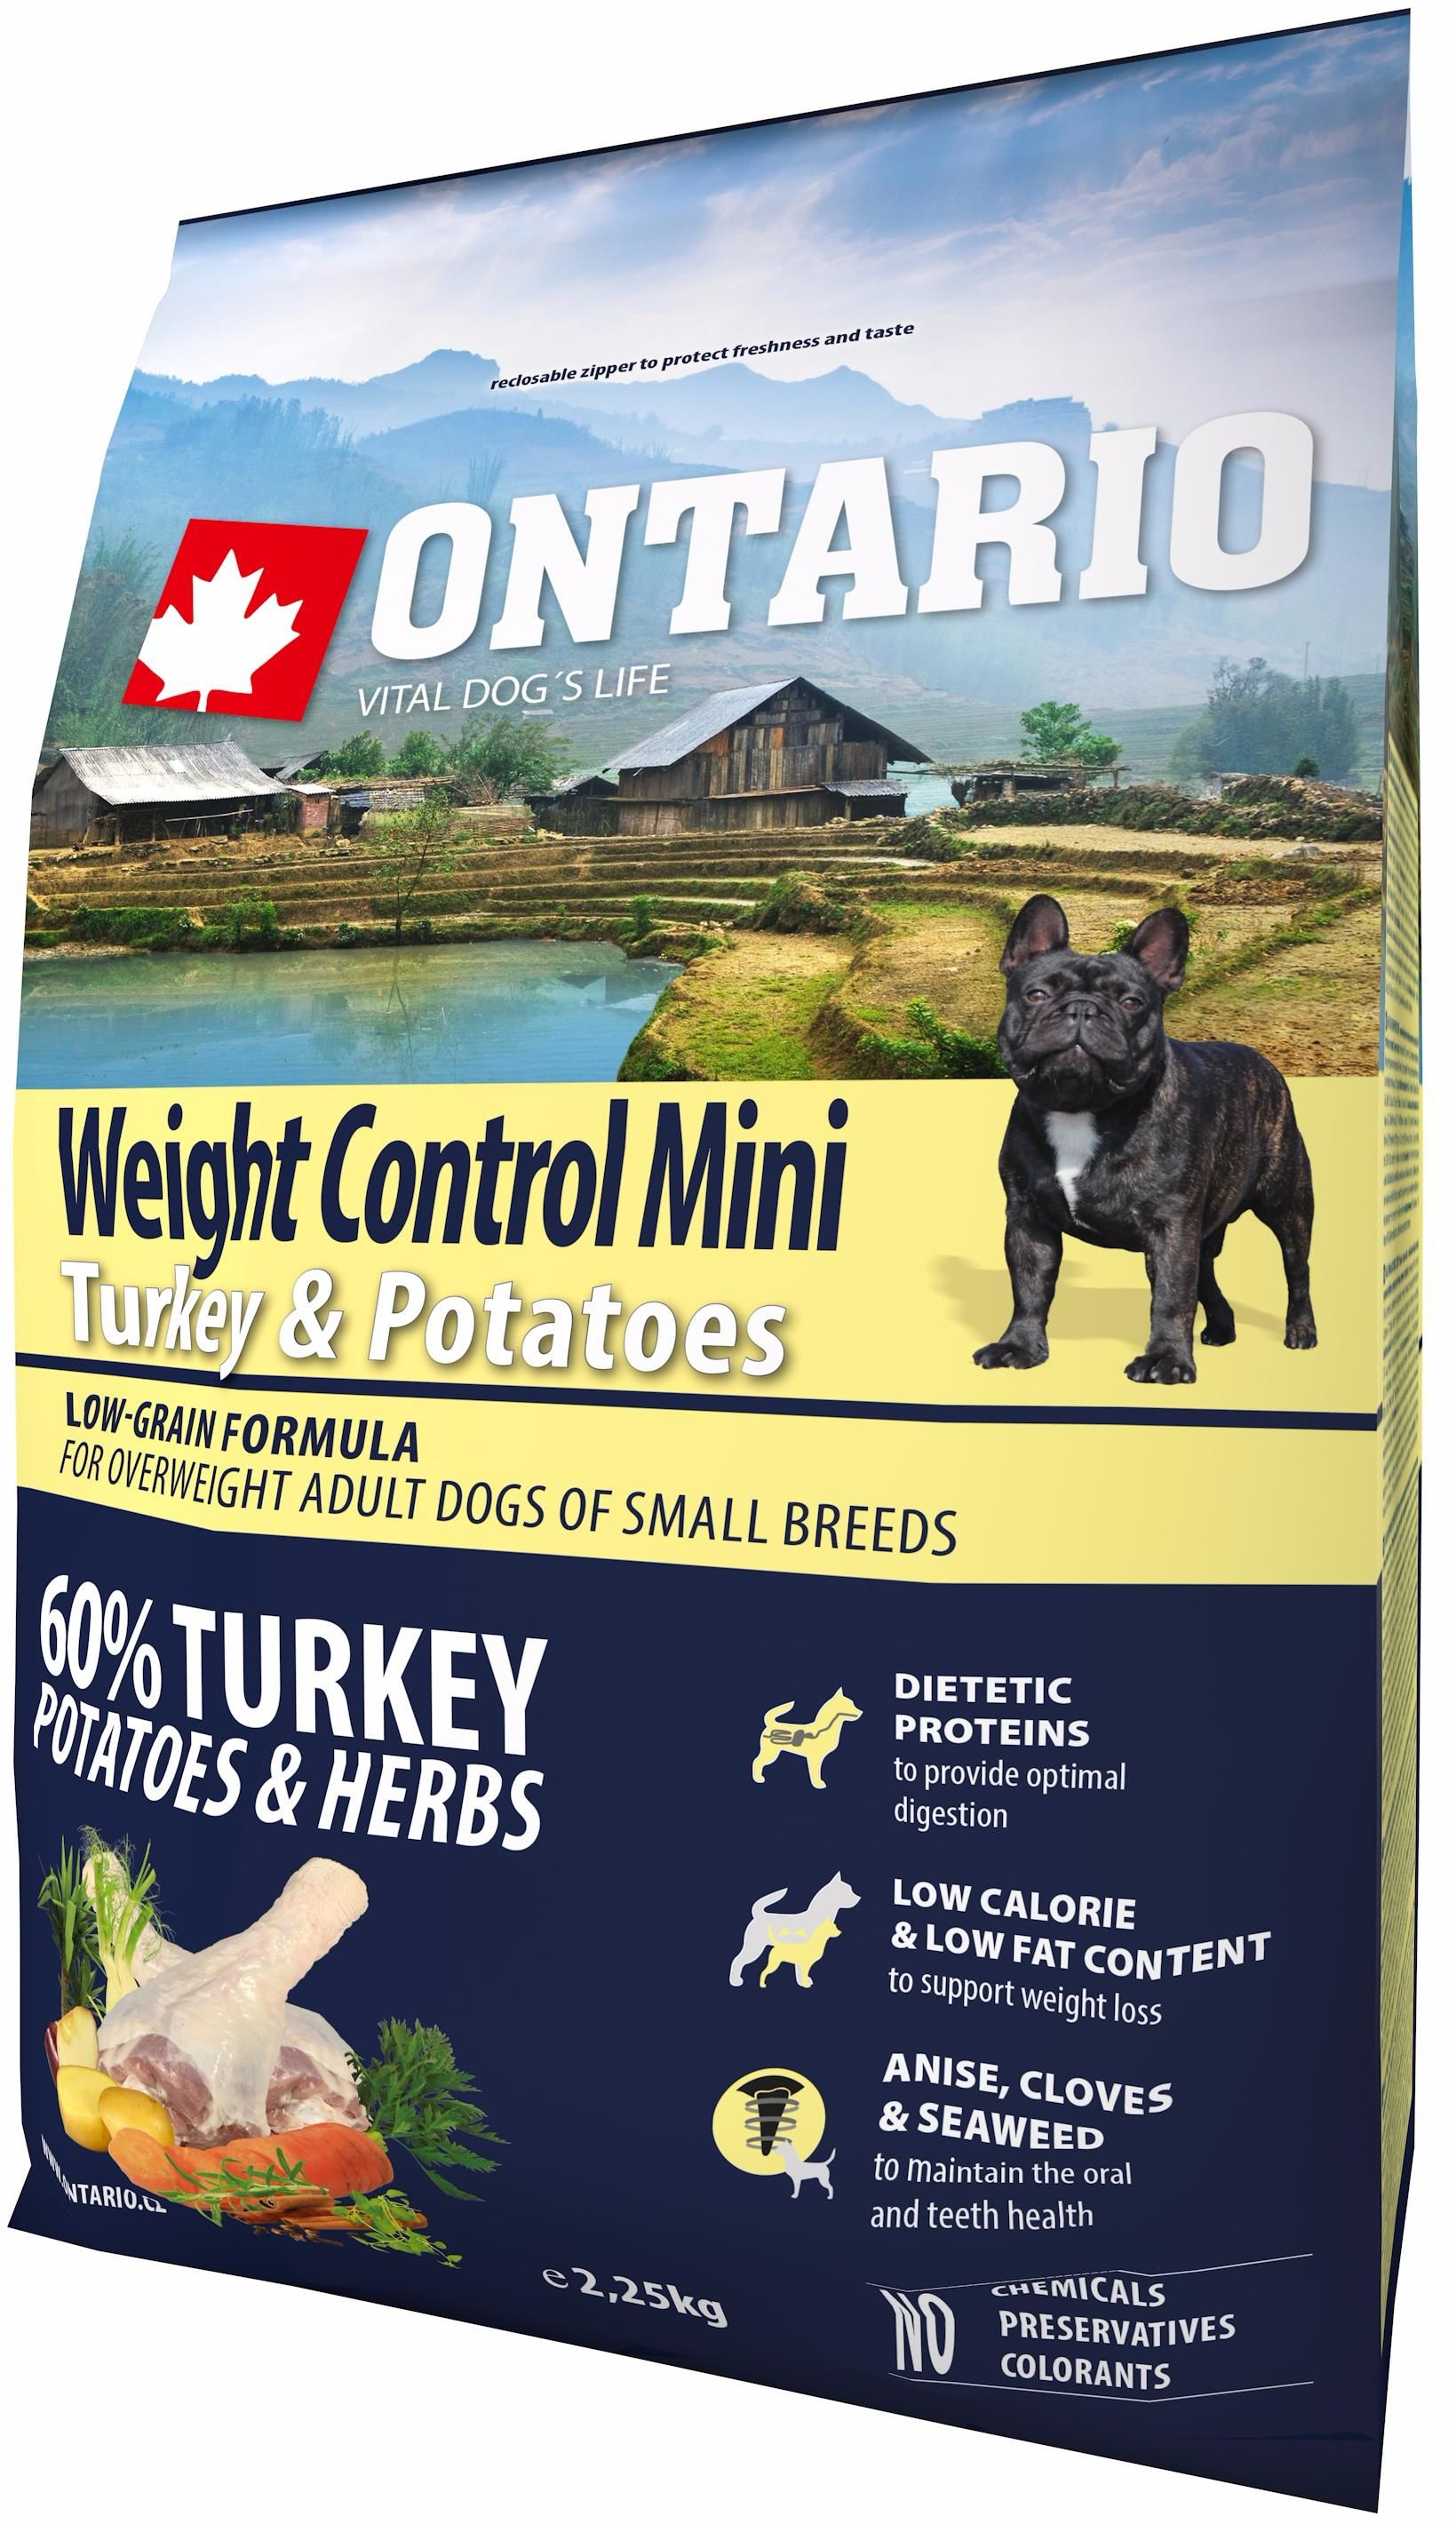 Ontario Weight Control Mini turkey & potatoes